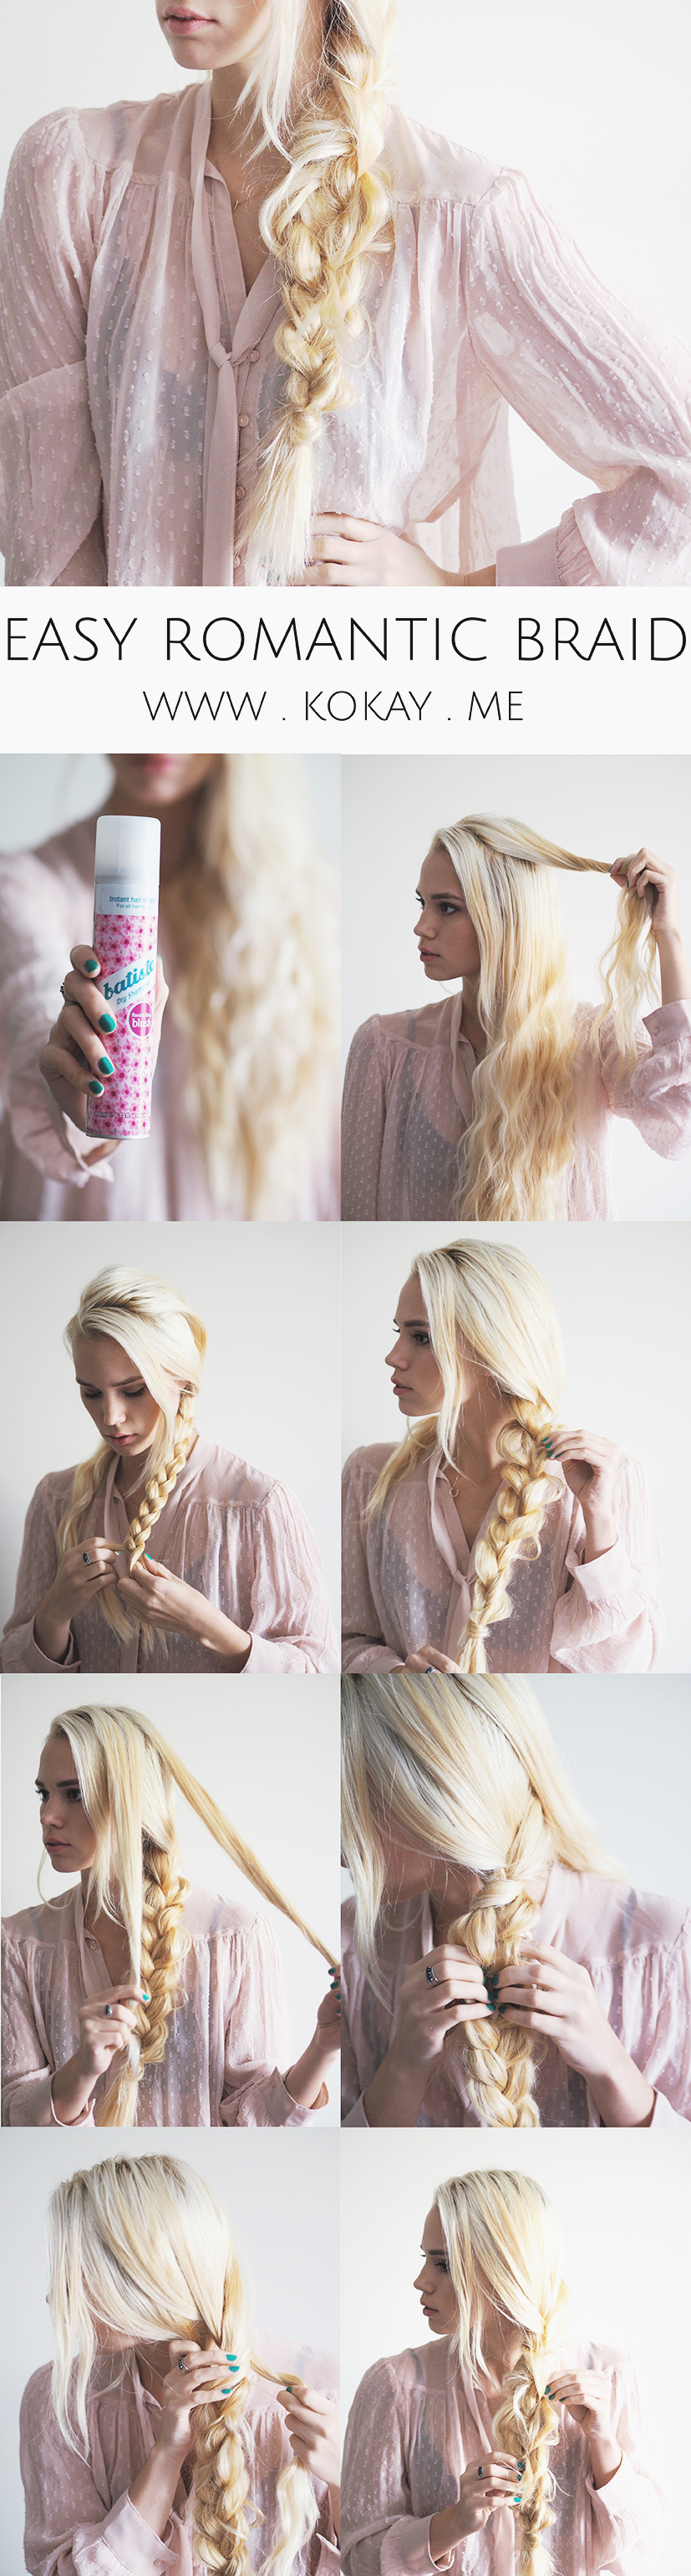 How to: diy easy romantic braid